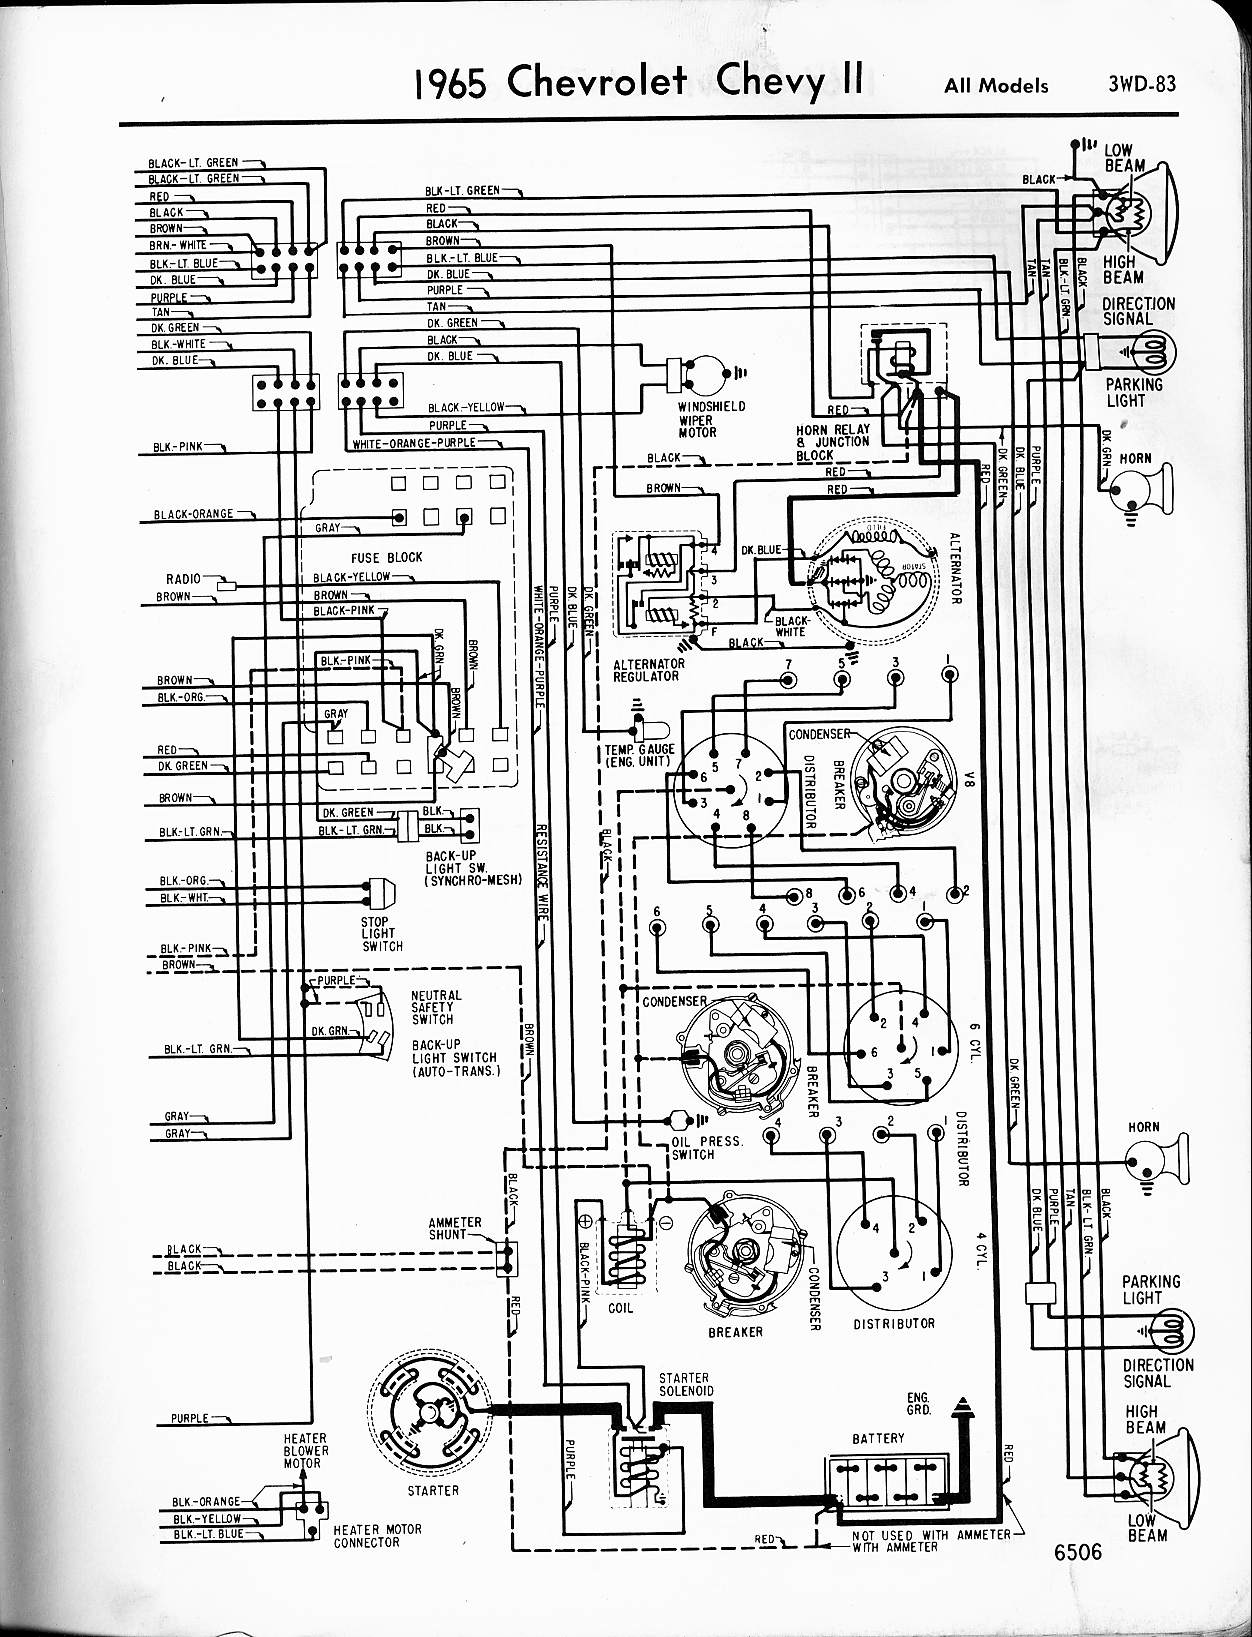 MWireChev65_3WD 083 1963 c10 pickup wiring diagram pdf chevy wiring diagrams \u2022 free 1975 impala wiring diagram at virtualis.co